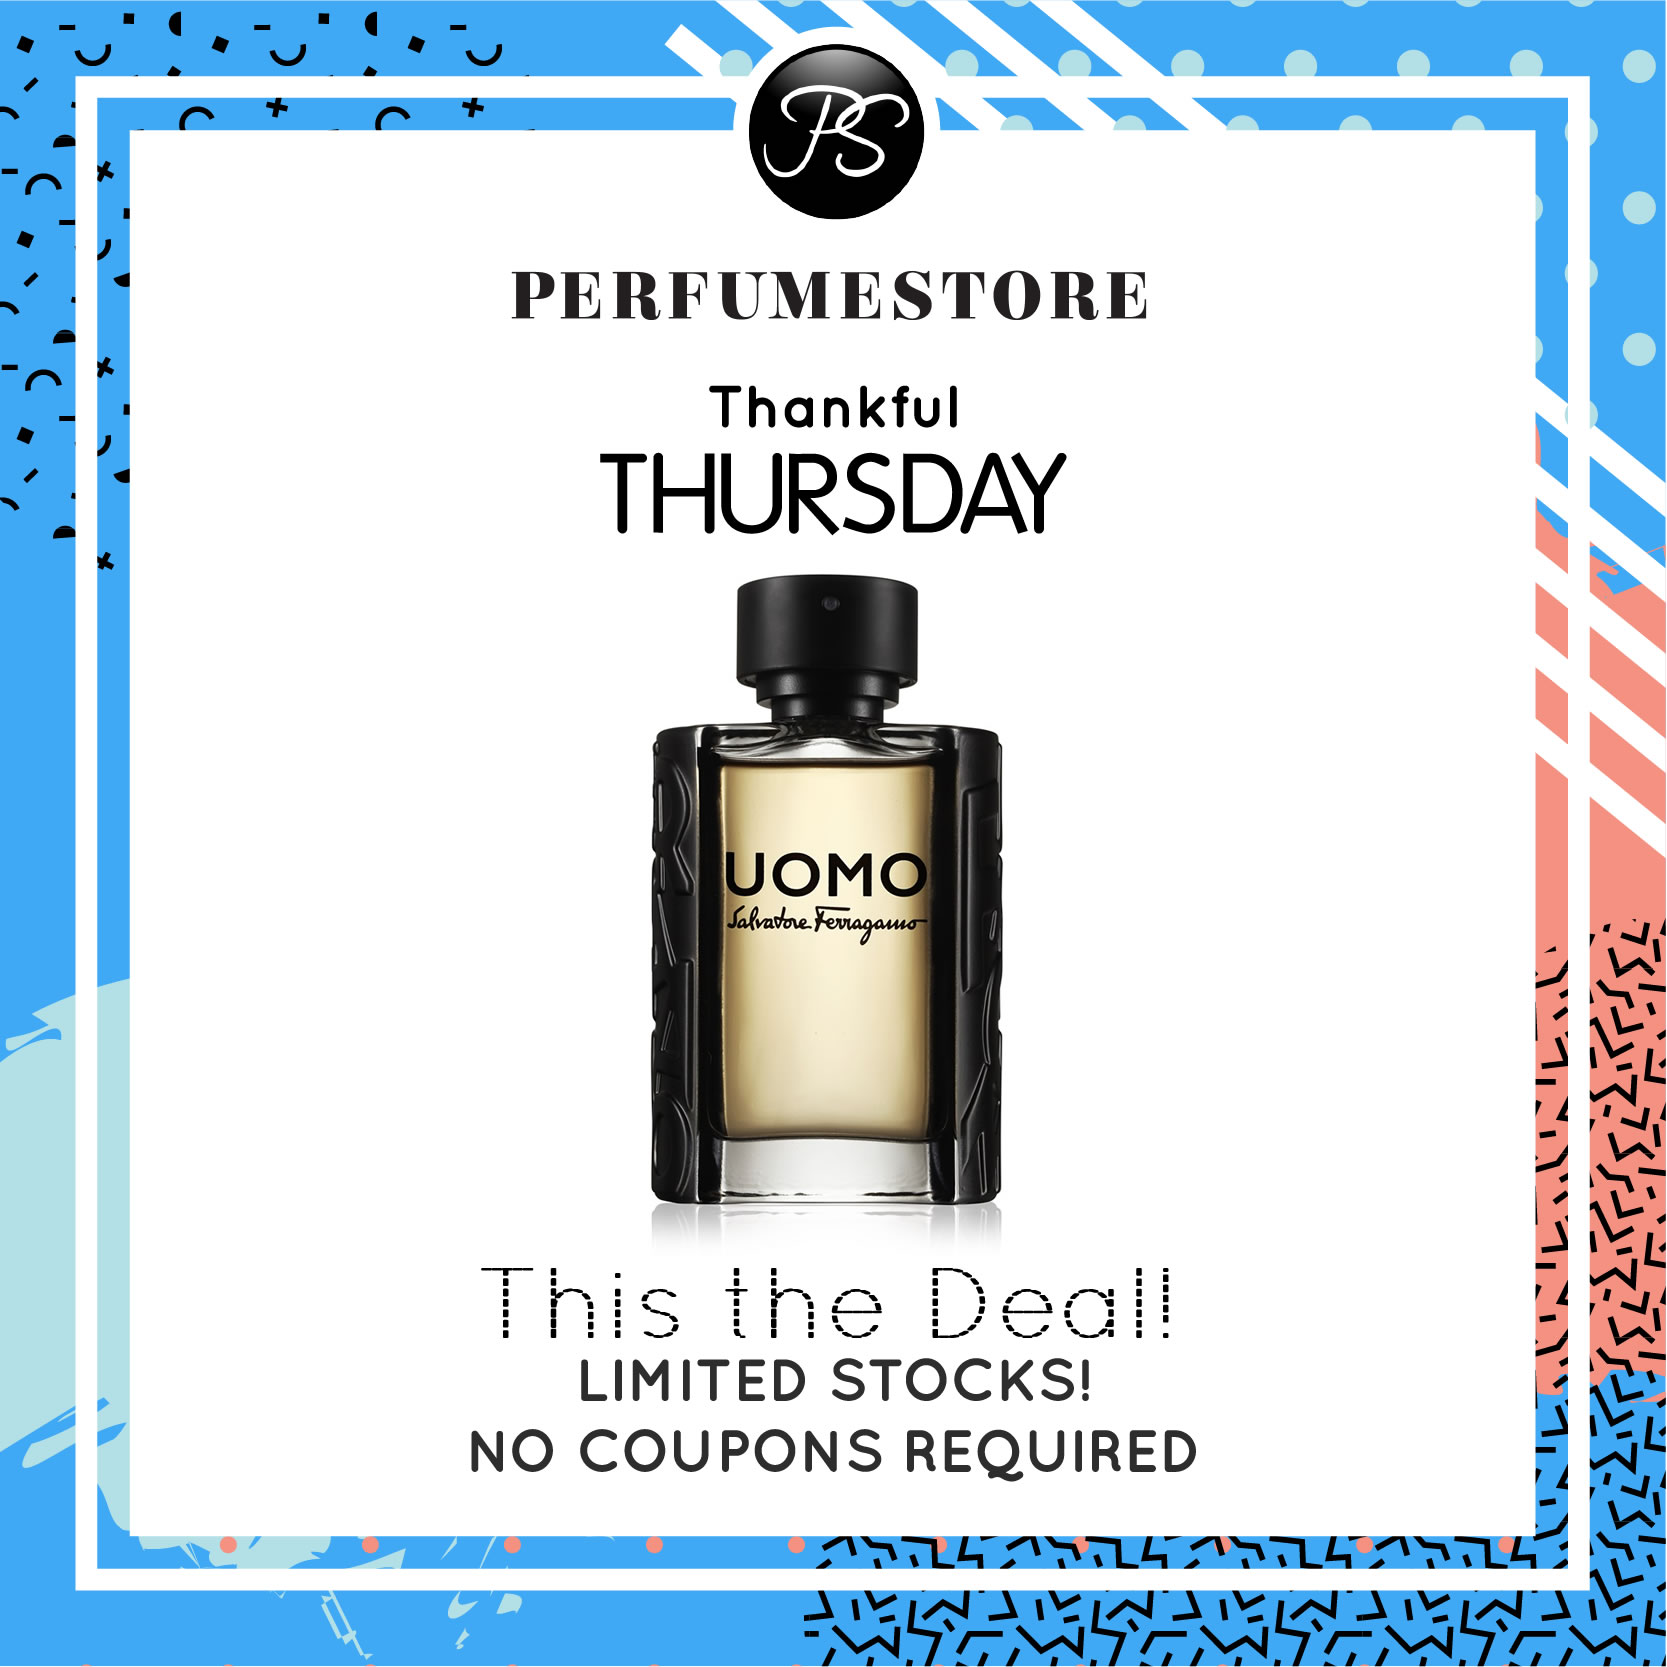 SALVATORE FERRAGAMO UOMO EDT FOR MEN 100ML [THANKFUL THURSDAY SPECIAL]